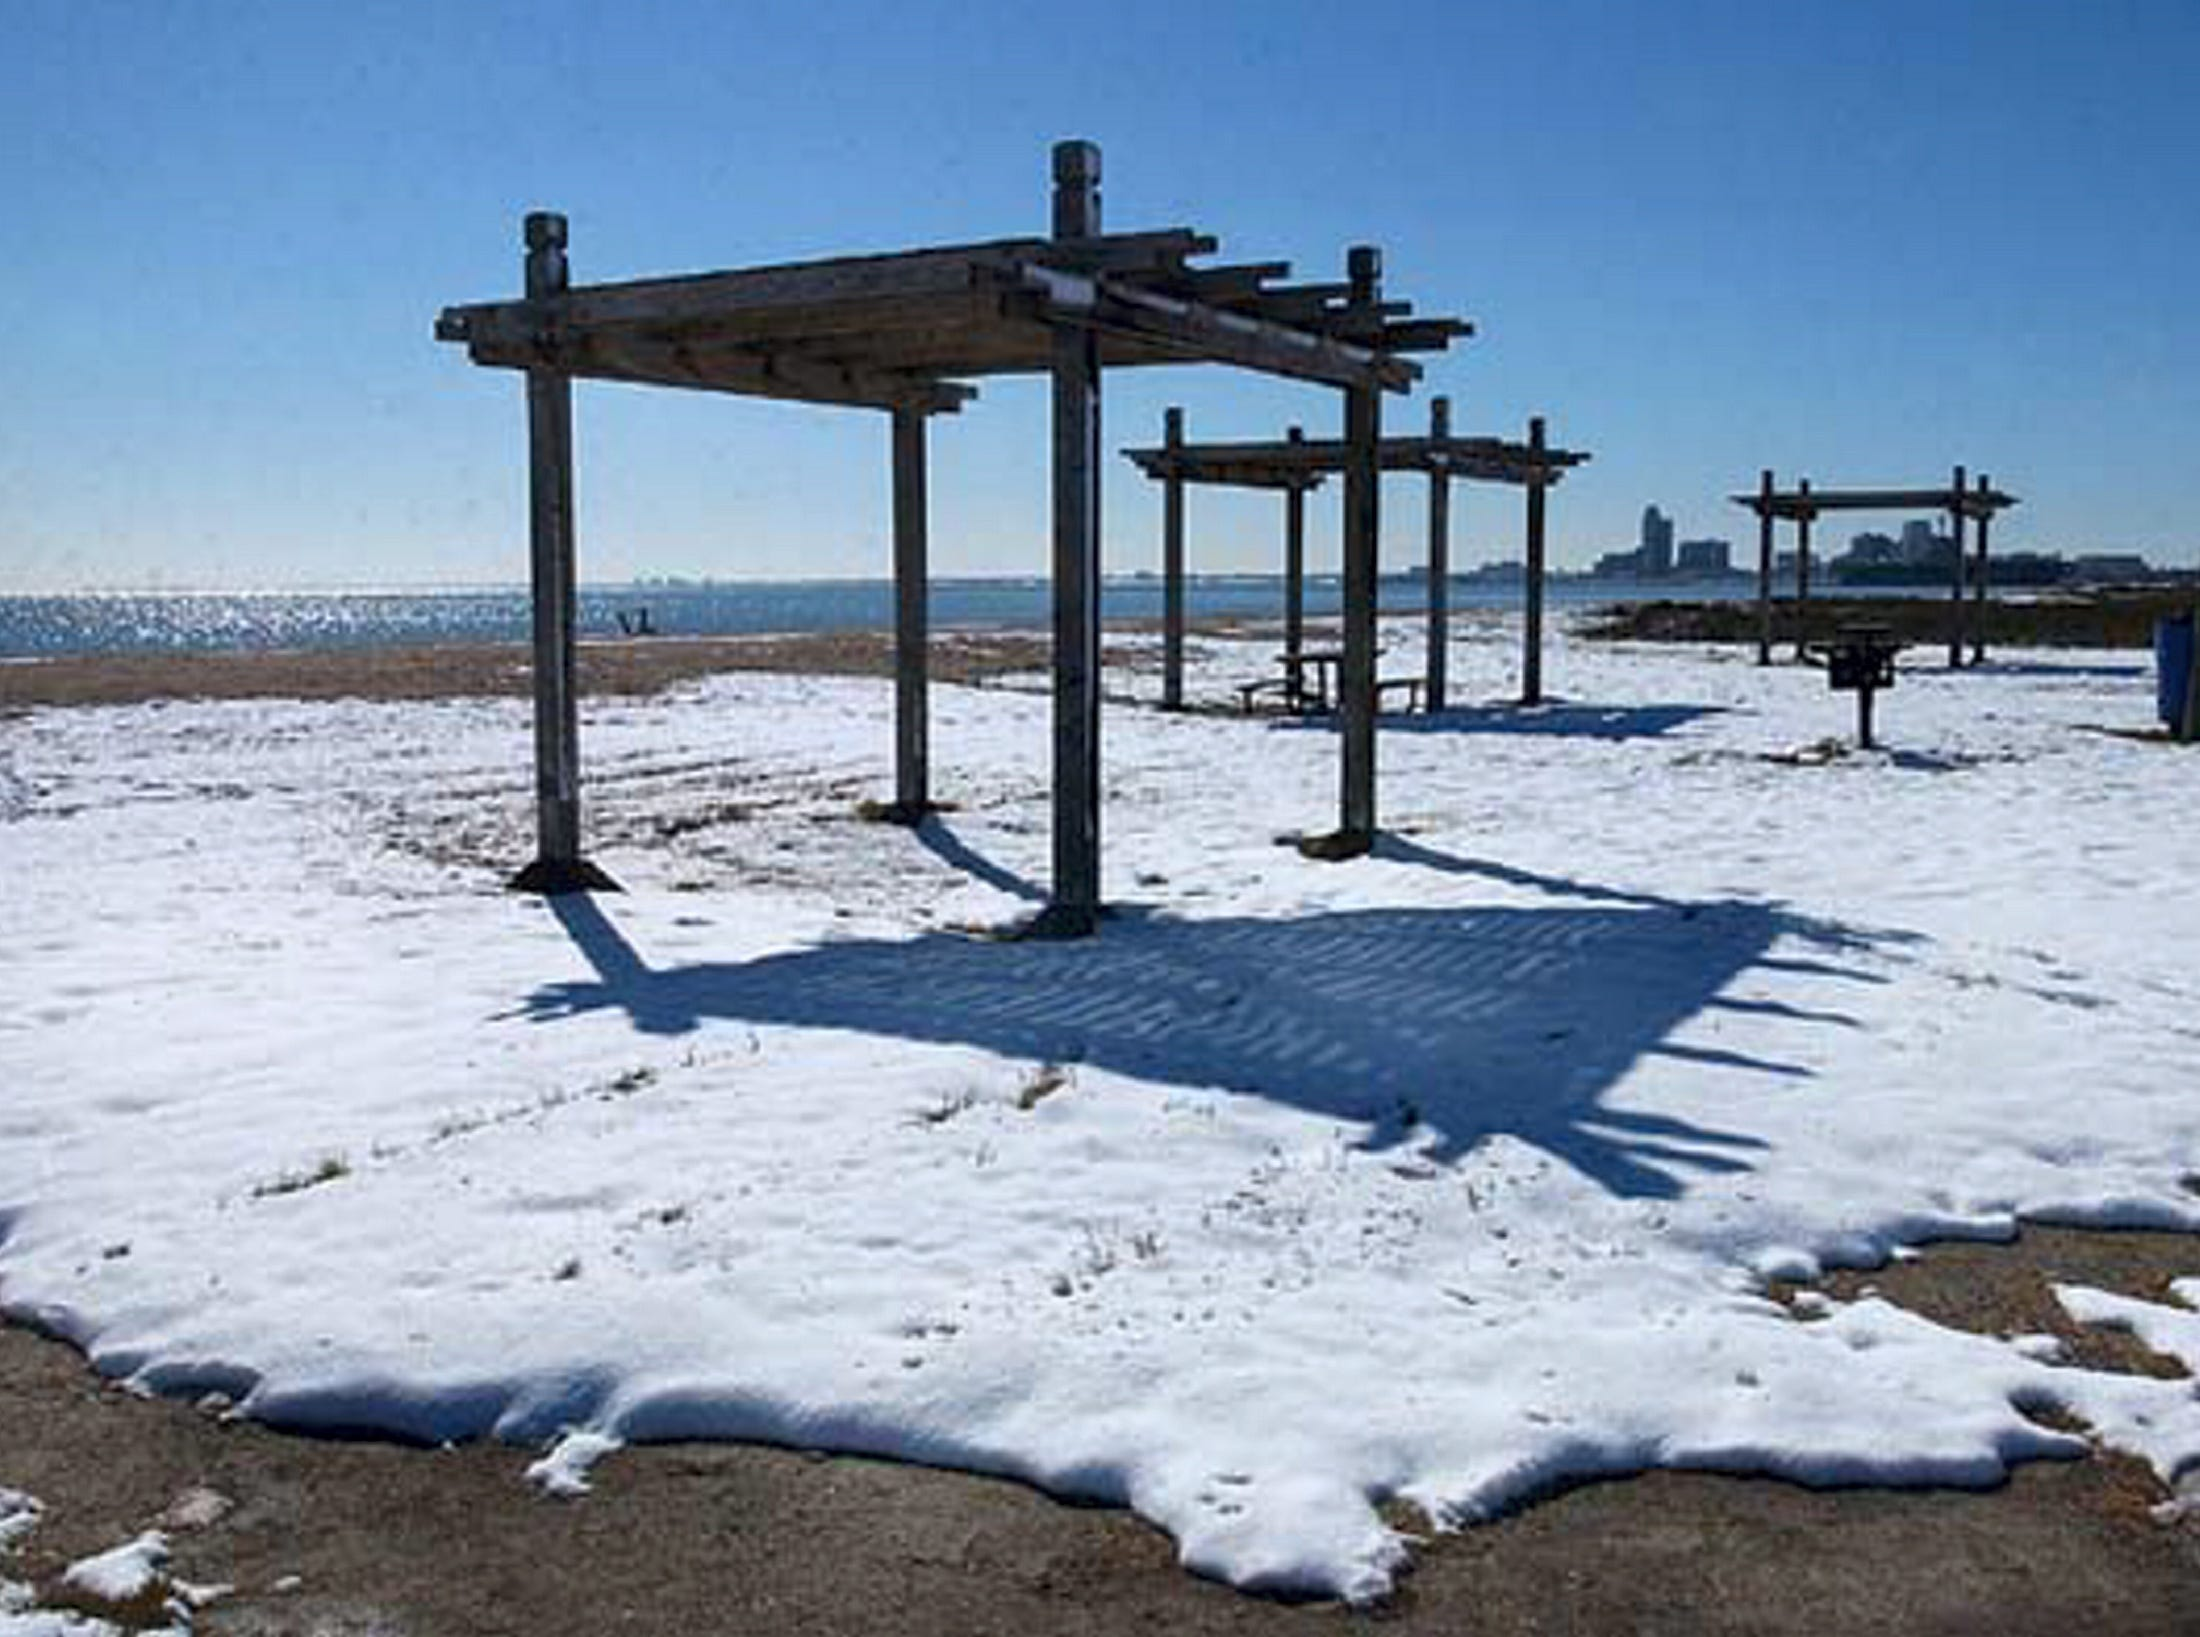 Snow covers the sand on North Beach on Dec. 25, 2004.